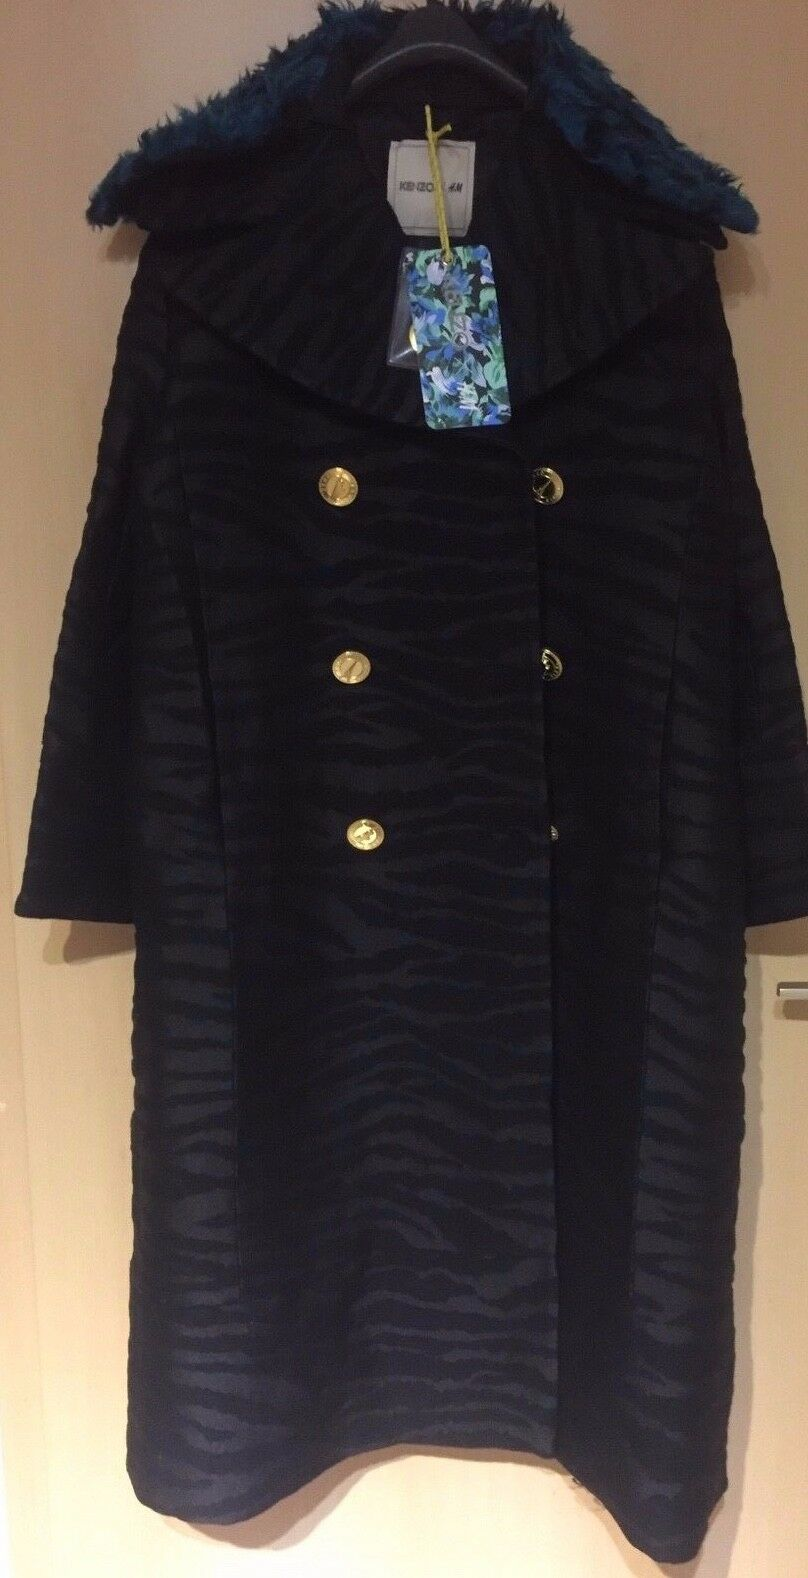 KENZO X H&M Mantel Wintermantel Coat EUR Größe 38 size US 8 size new